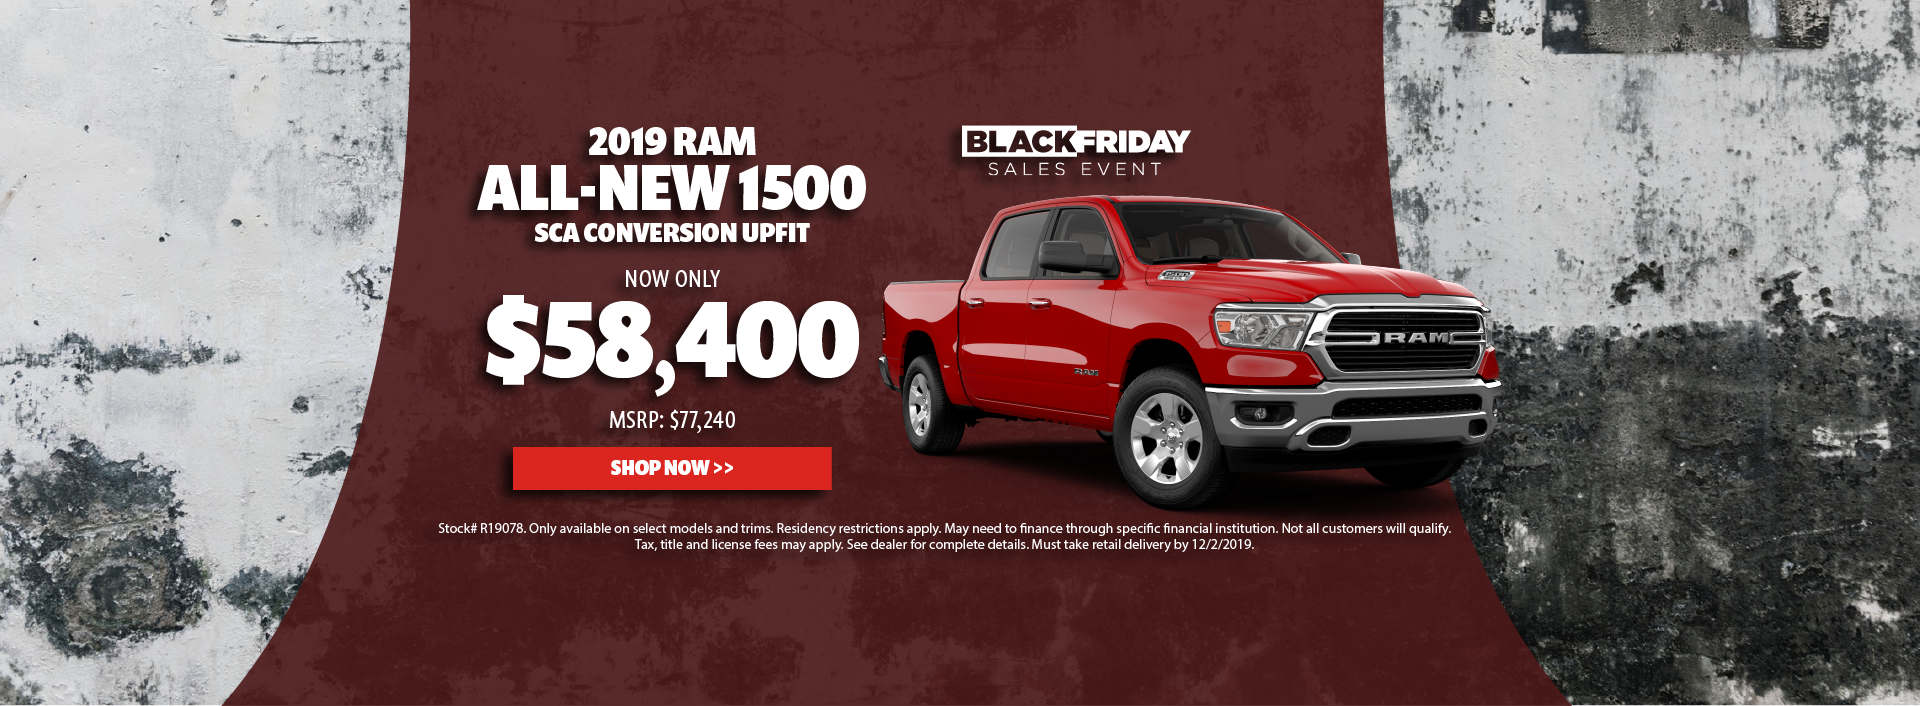 2019 Ram 1500 SCA Conversion Upfit Offer